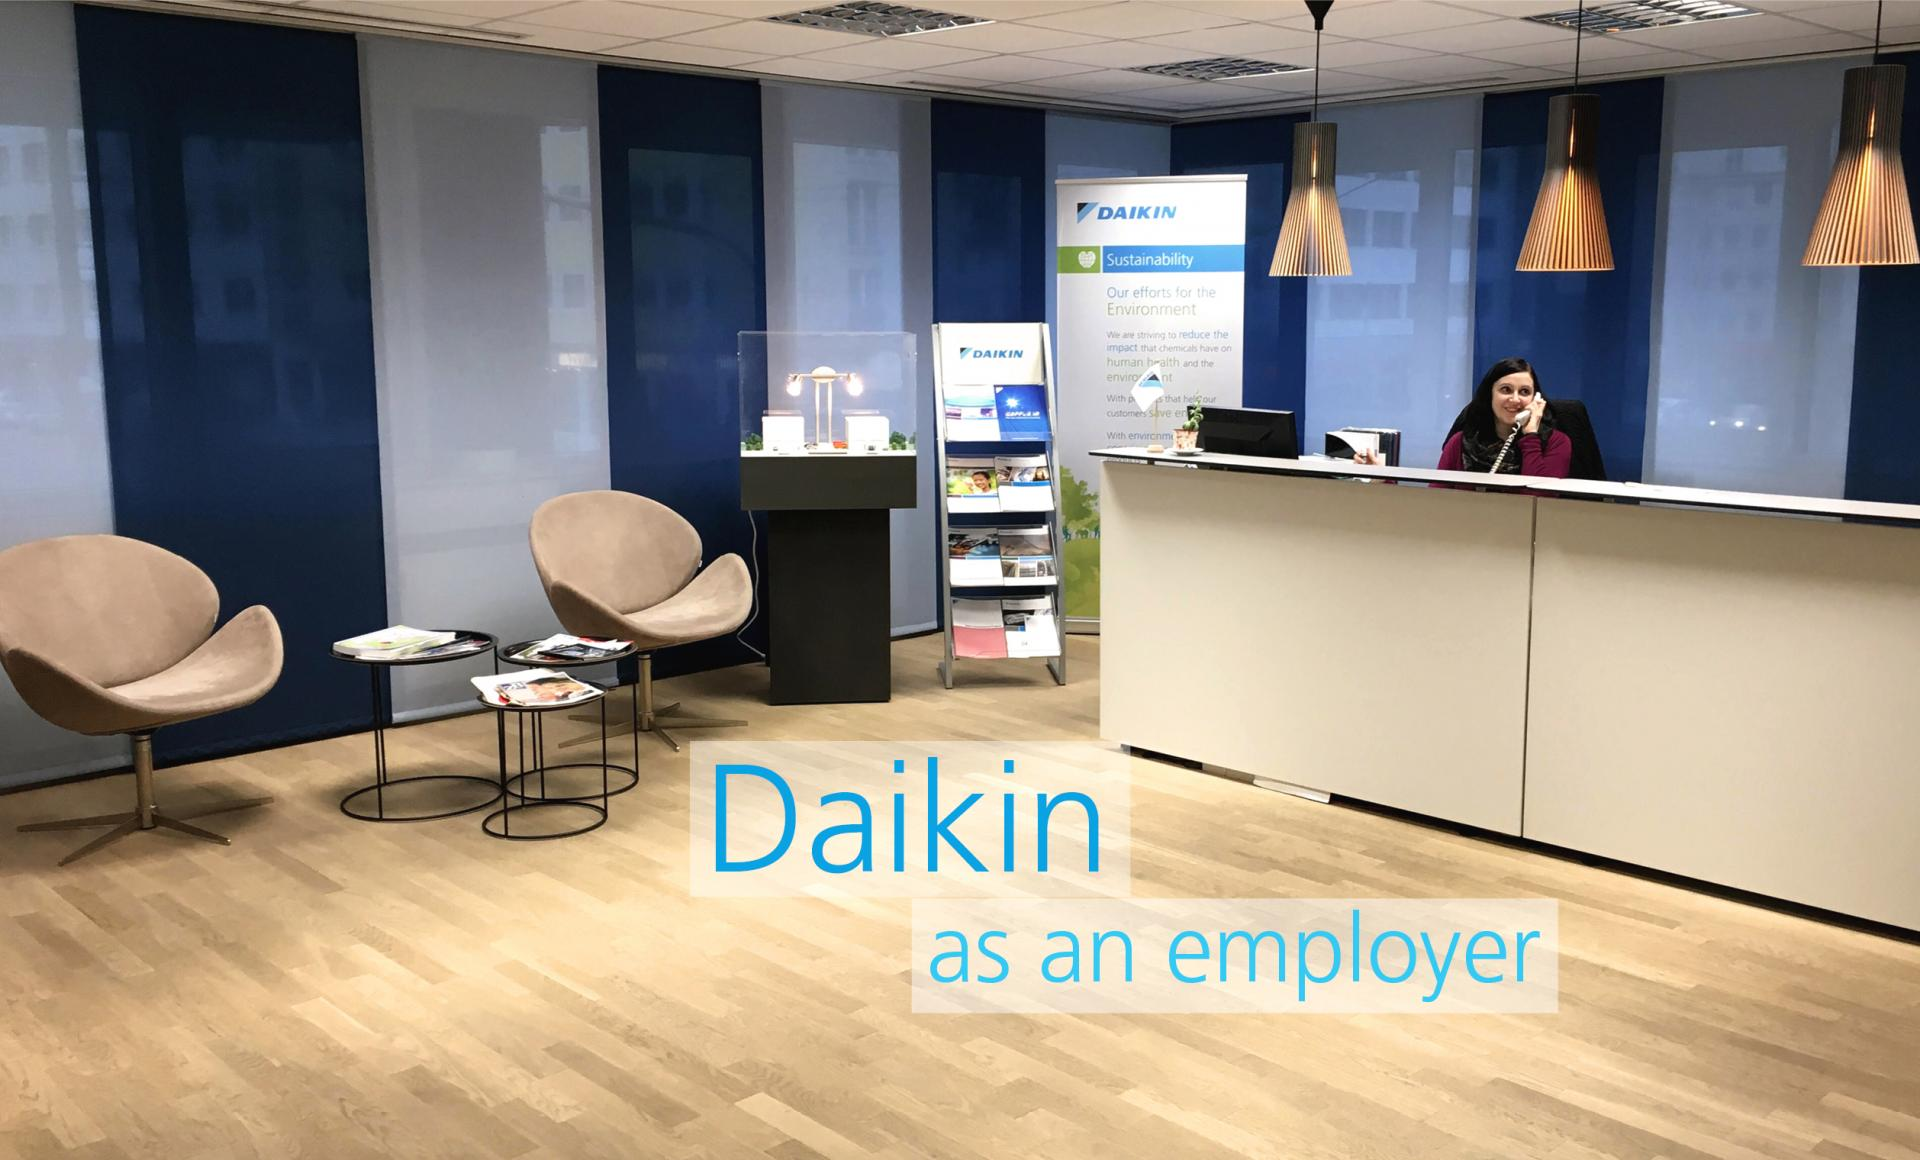 Daikin as an employer